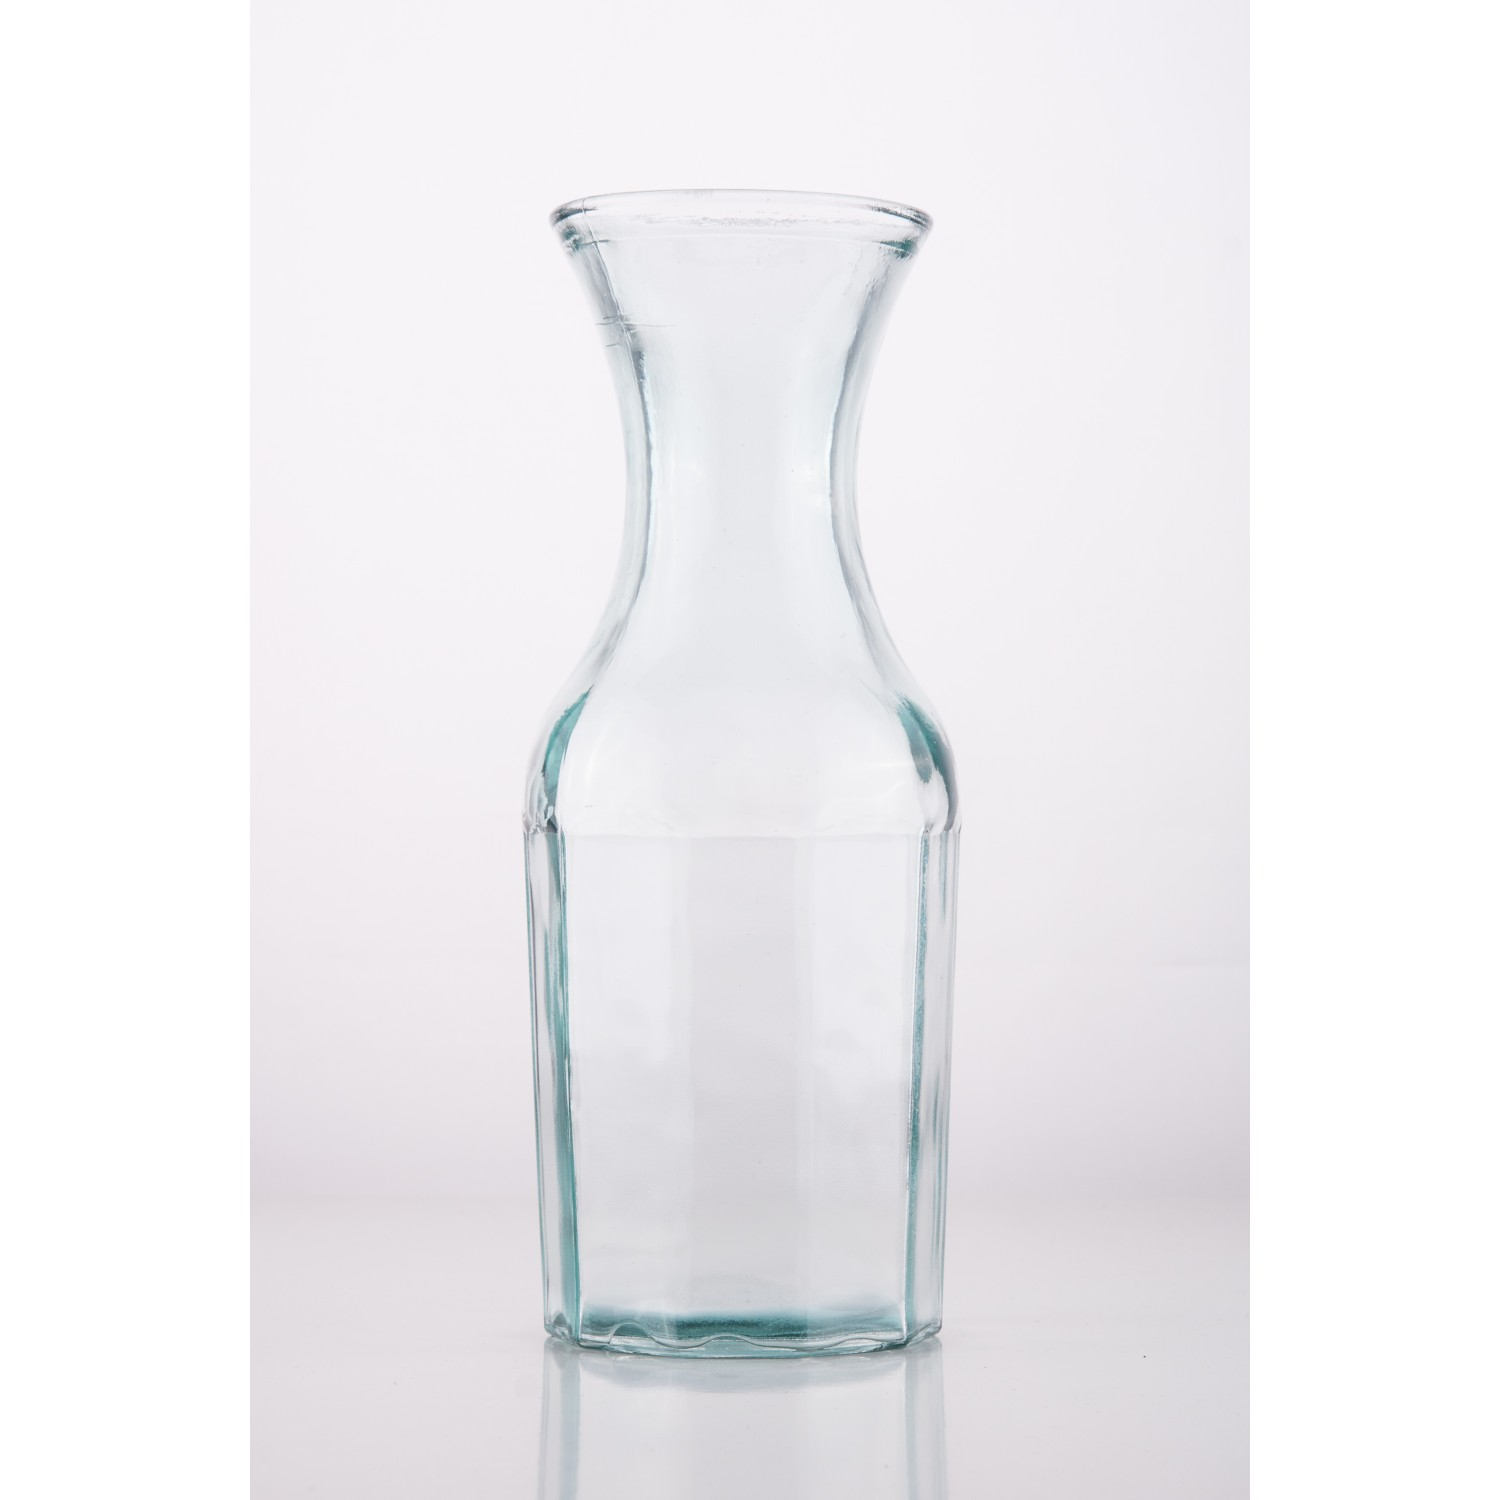 Retro Glass Carafe 1 l